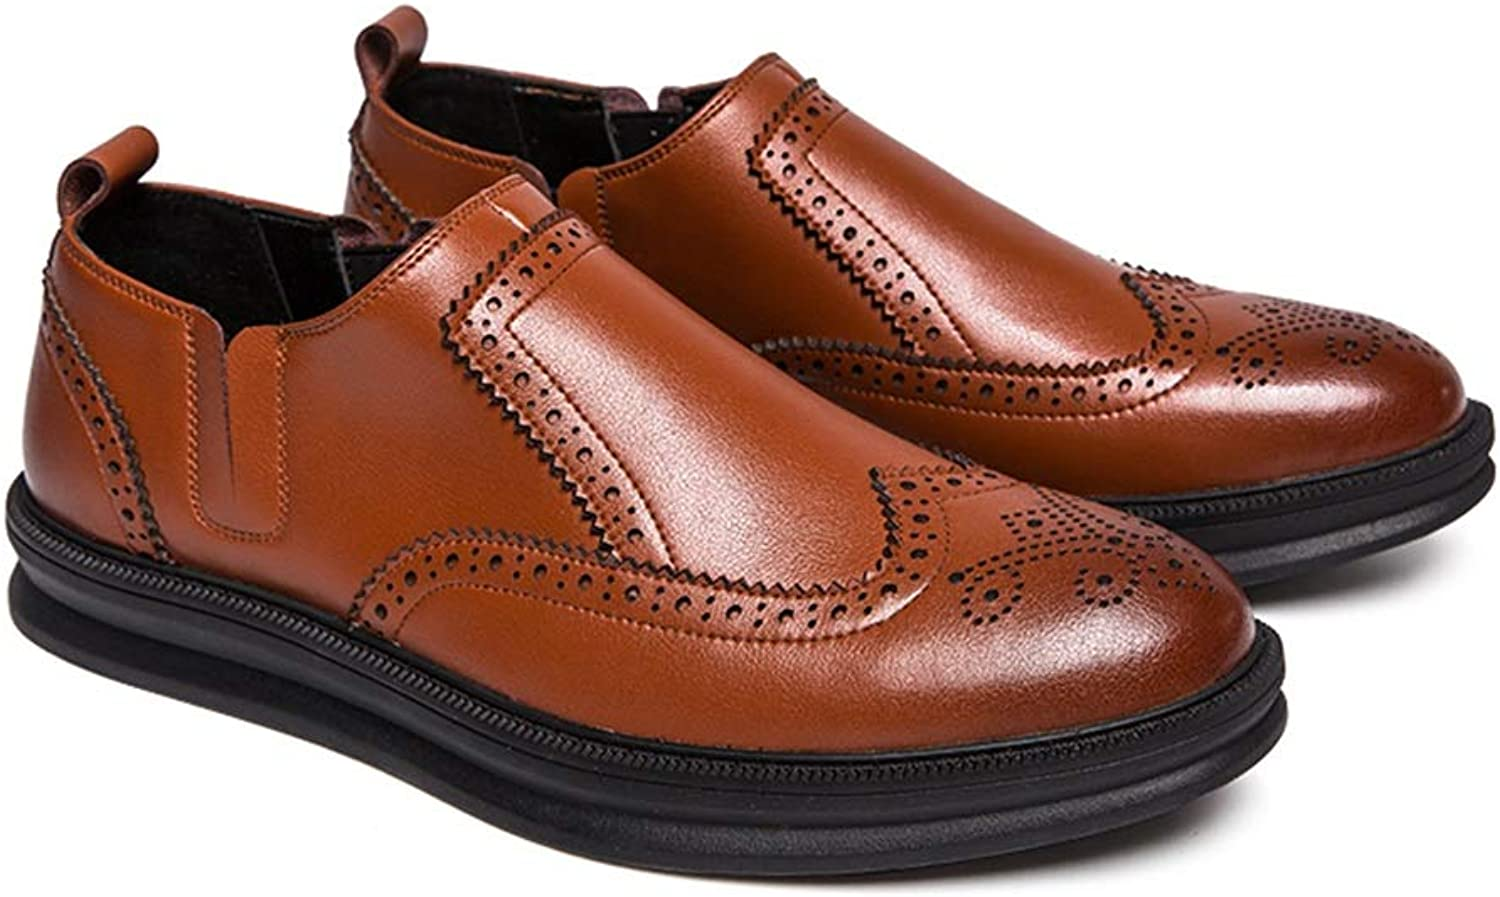 Yajie-shoes, Business Oxford Casual Classic Carvings British Style Brogue shoes For Men (color   Brown, Size   8.5 UK)